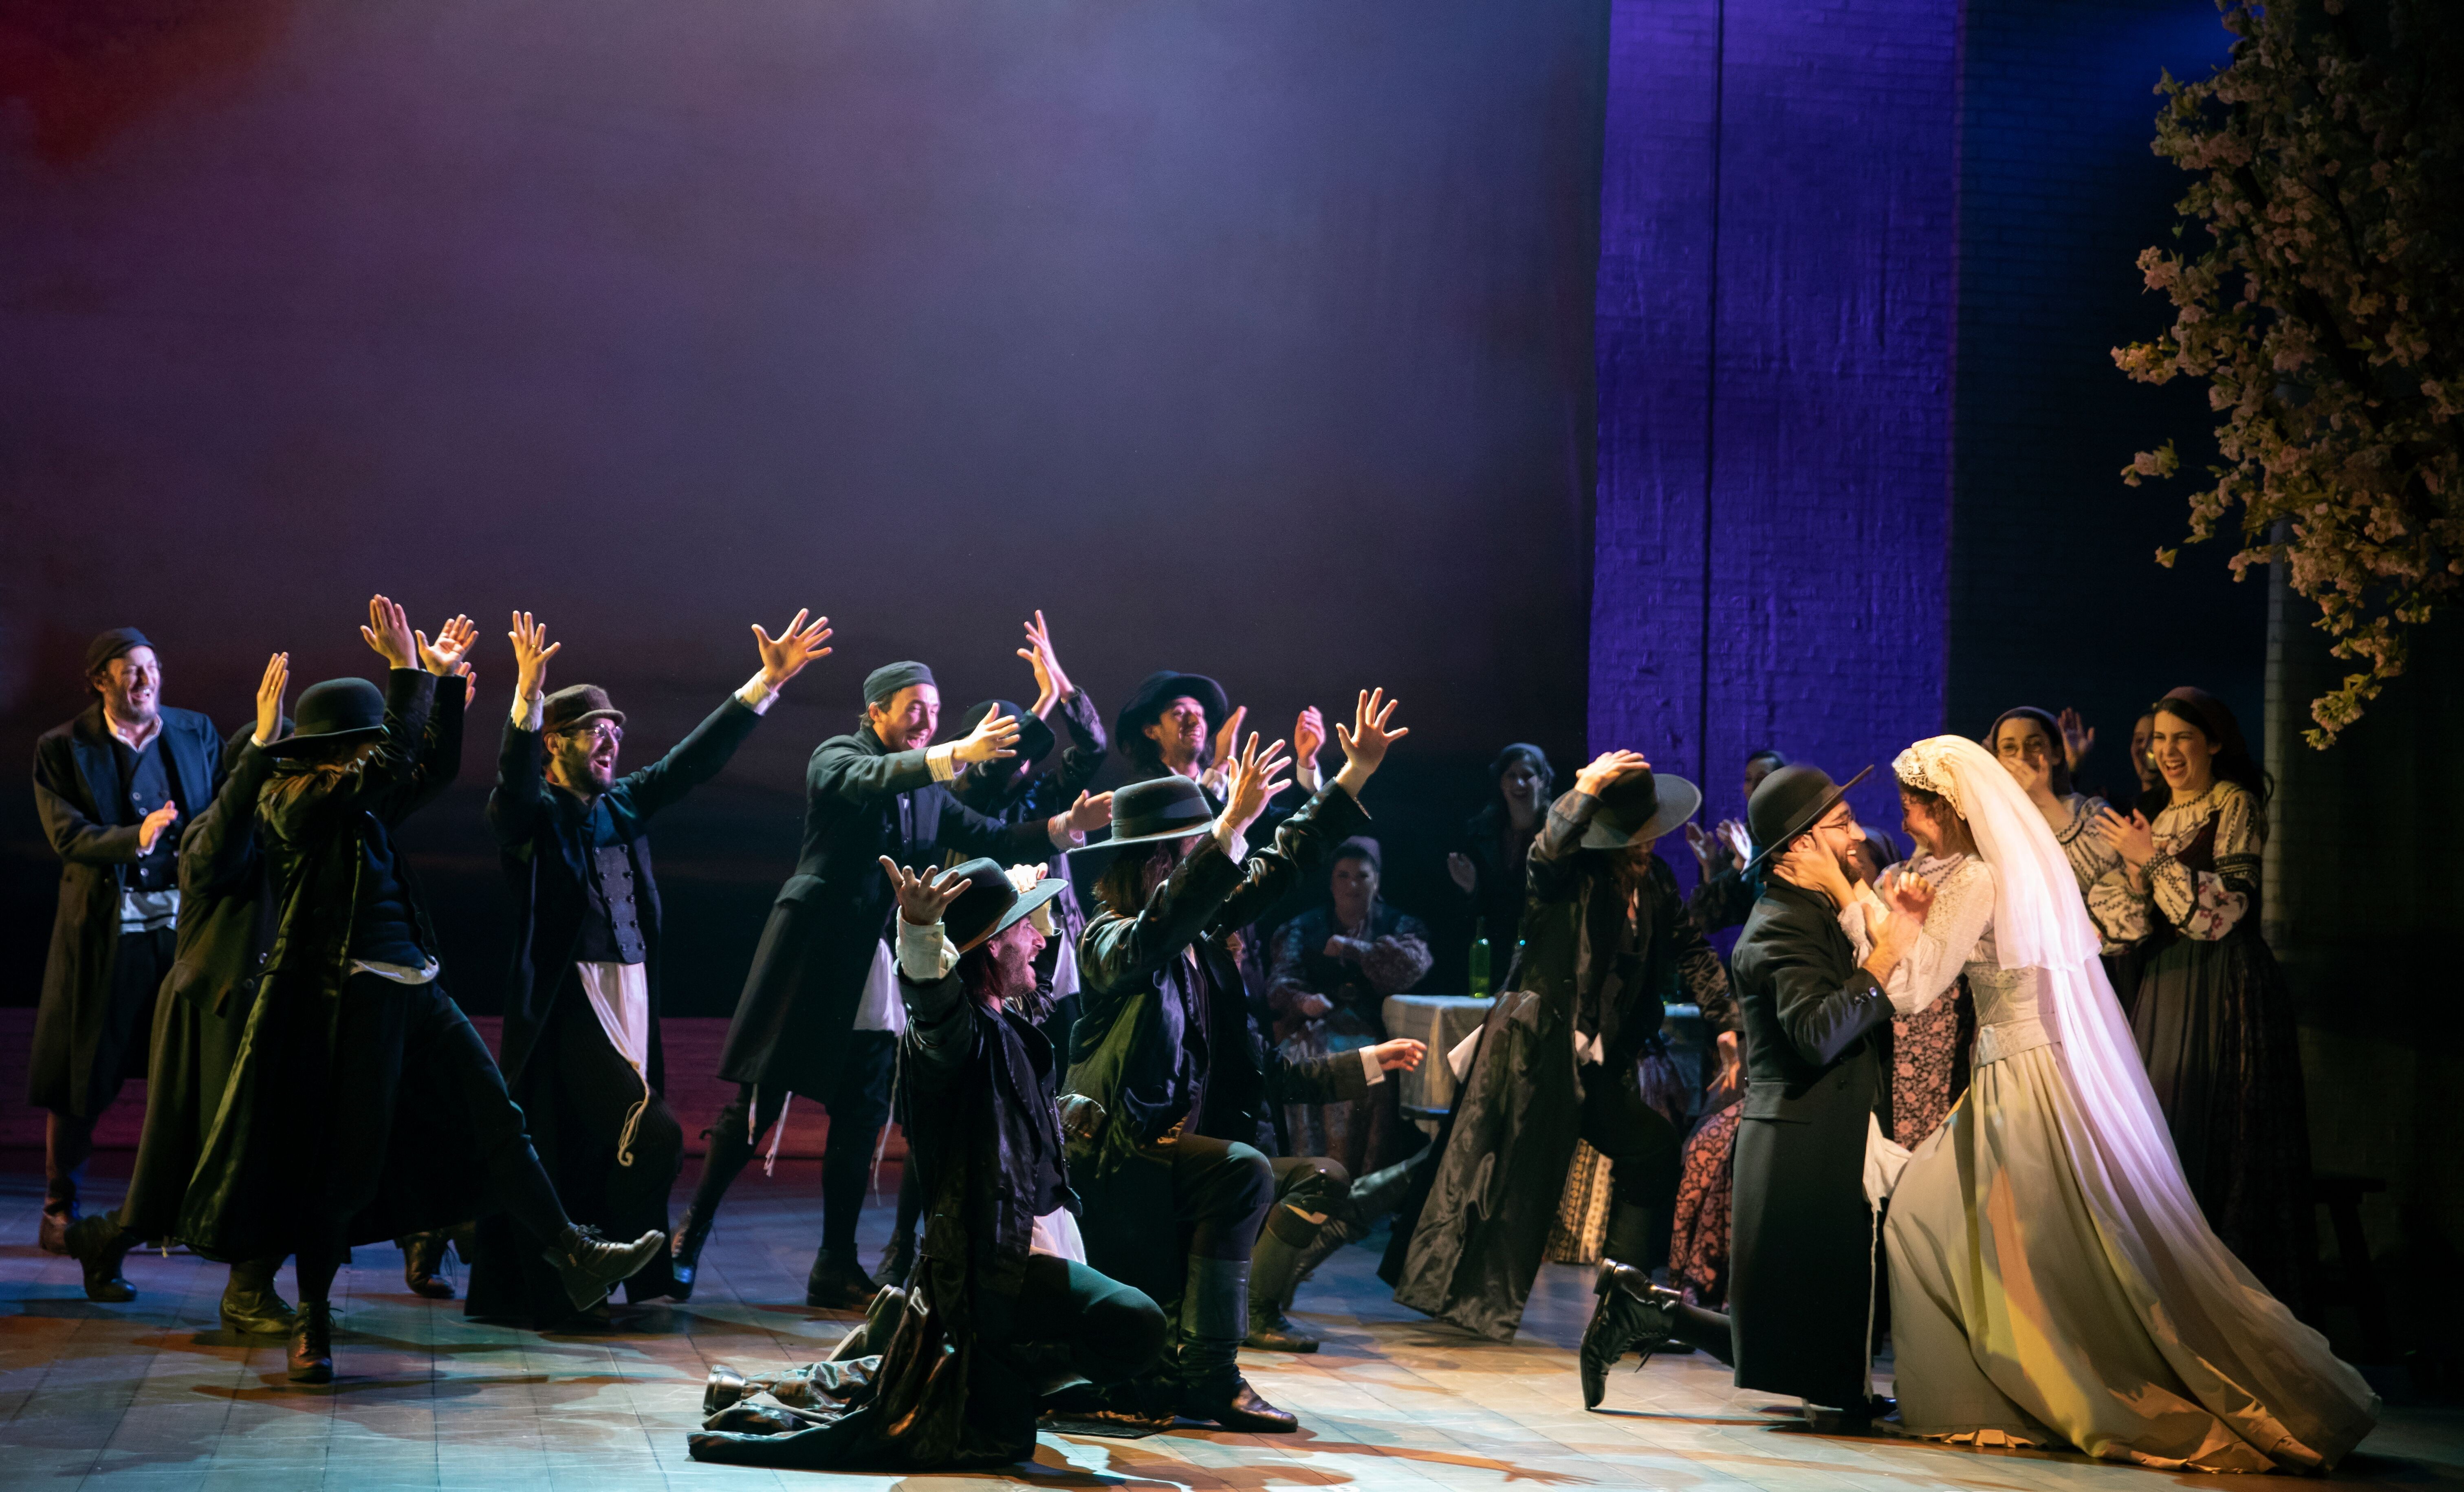 Seattle Event Calendar 2020 Fiddler on the Roof at Paramount Theatre in Seattle, WA on Jan 14